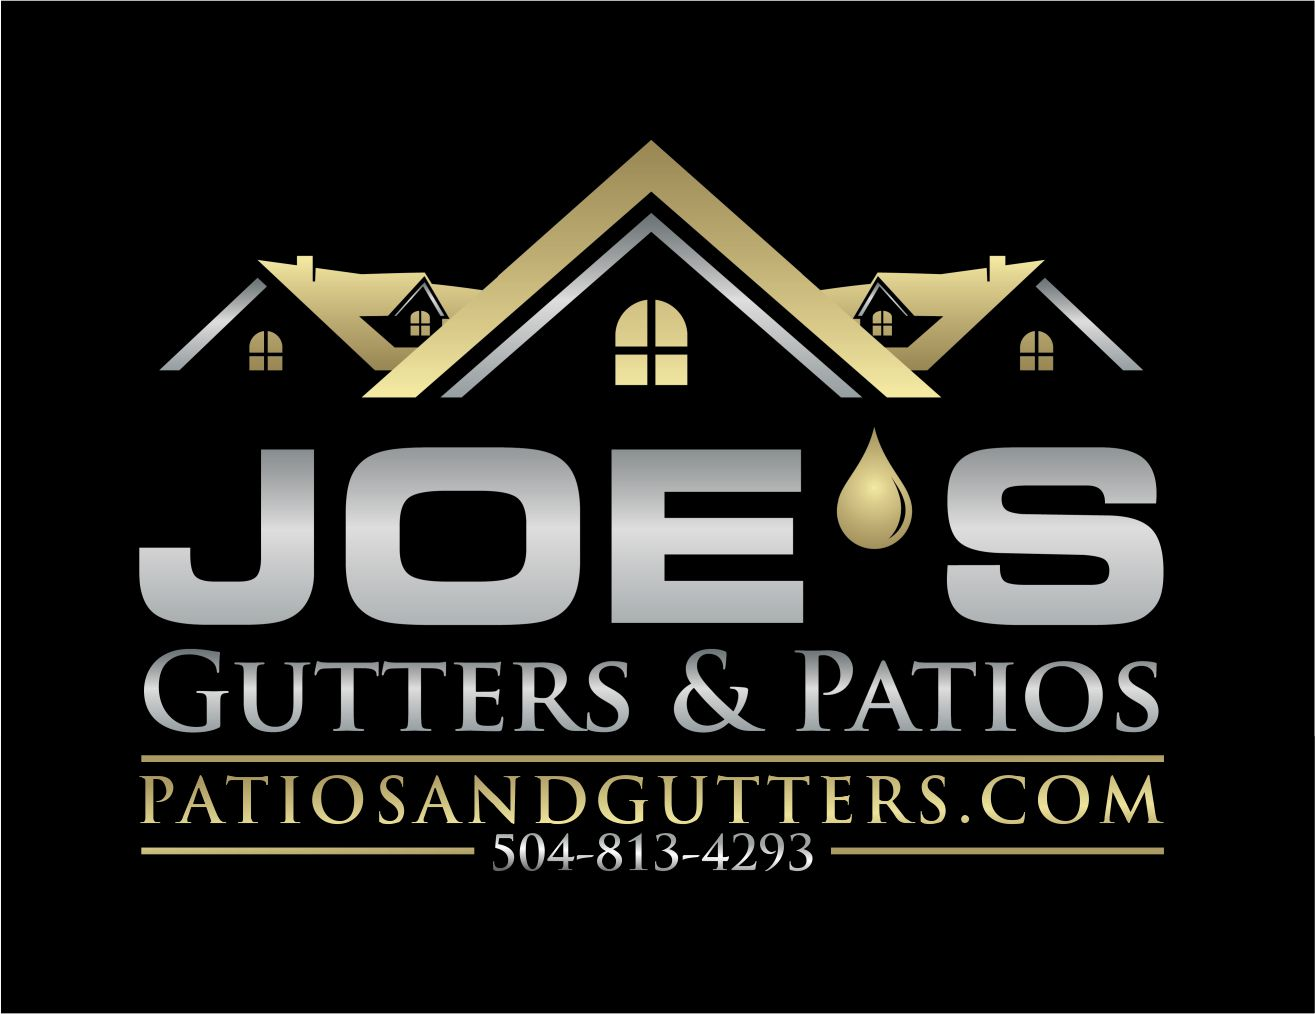 Logo Design by Raymond Garcia - Entry No. 9 in the Logo Design Contest Imaginative Logo Design for Joes Gutters & Patios.